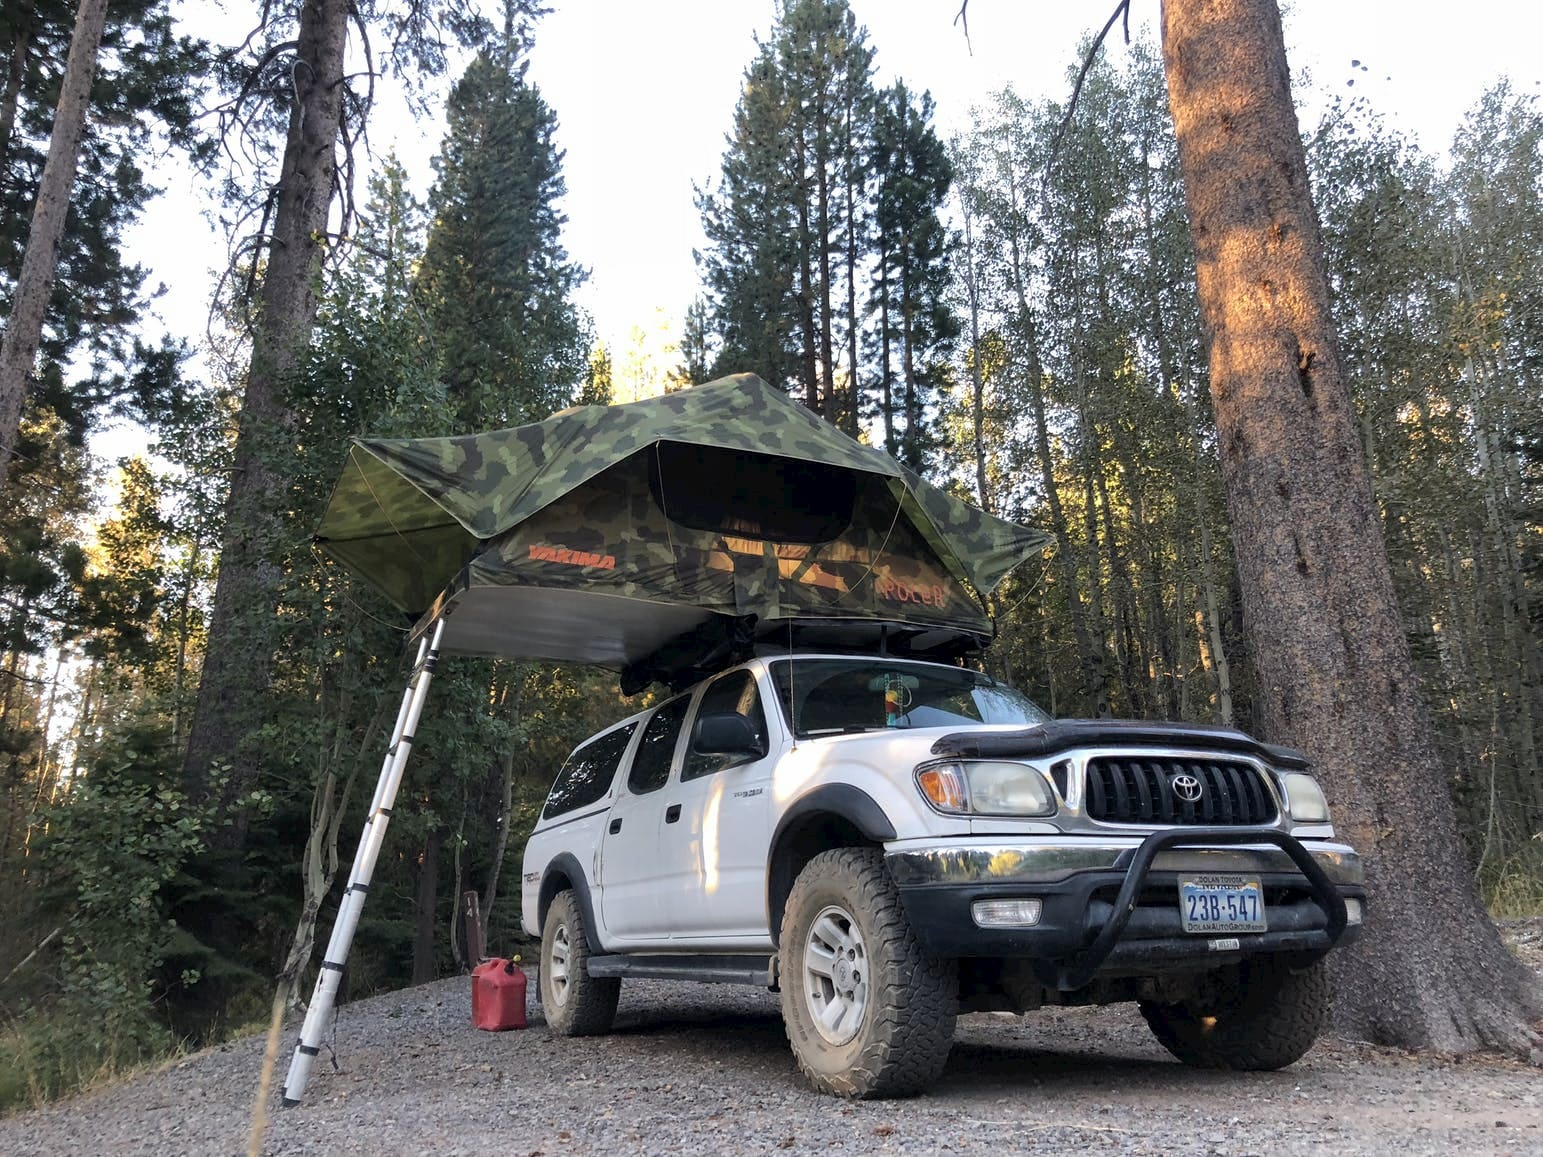 Large white SUV with rooftop tent set up in forested campsite.